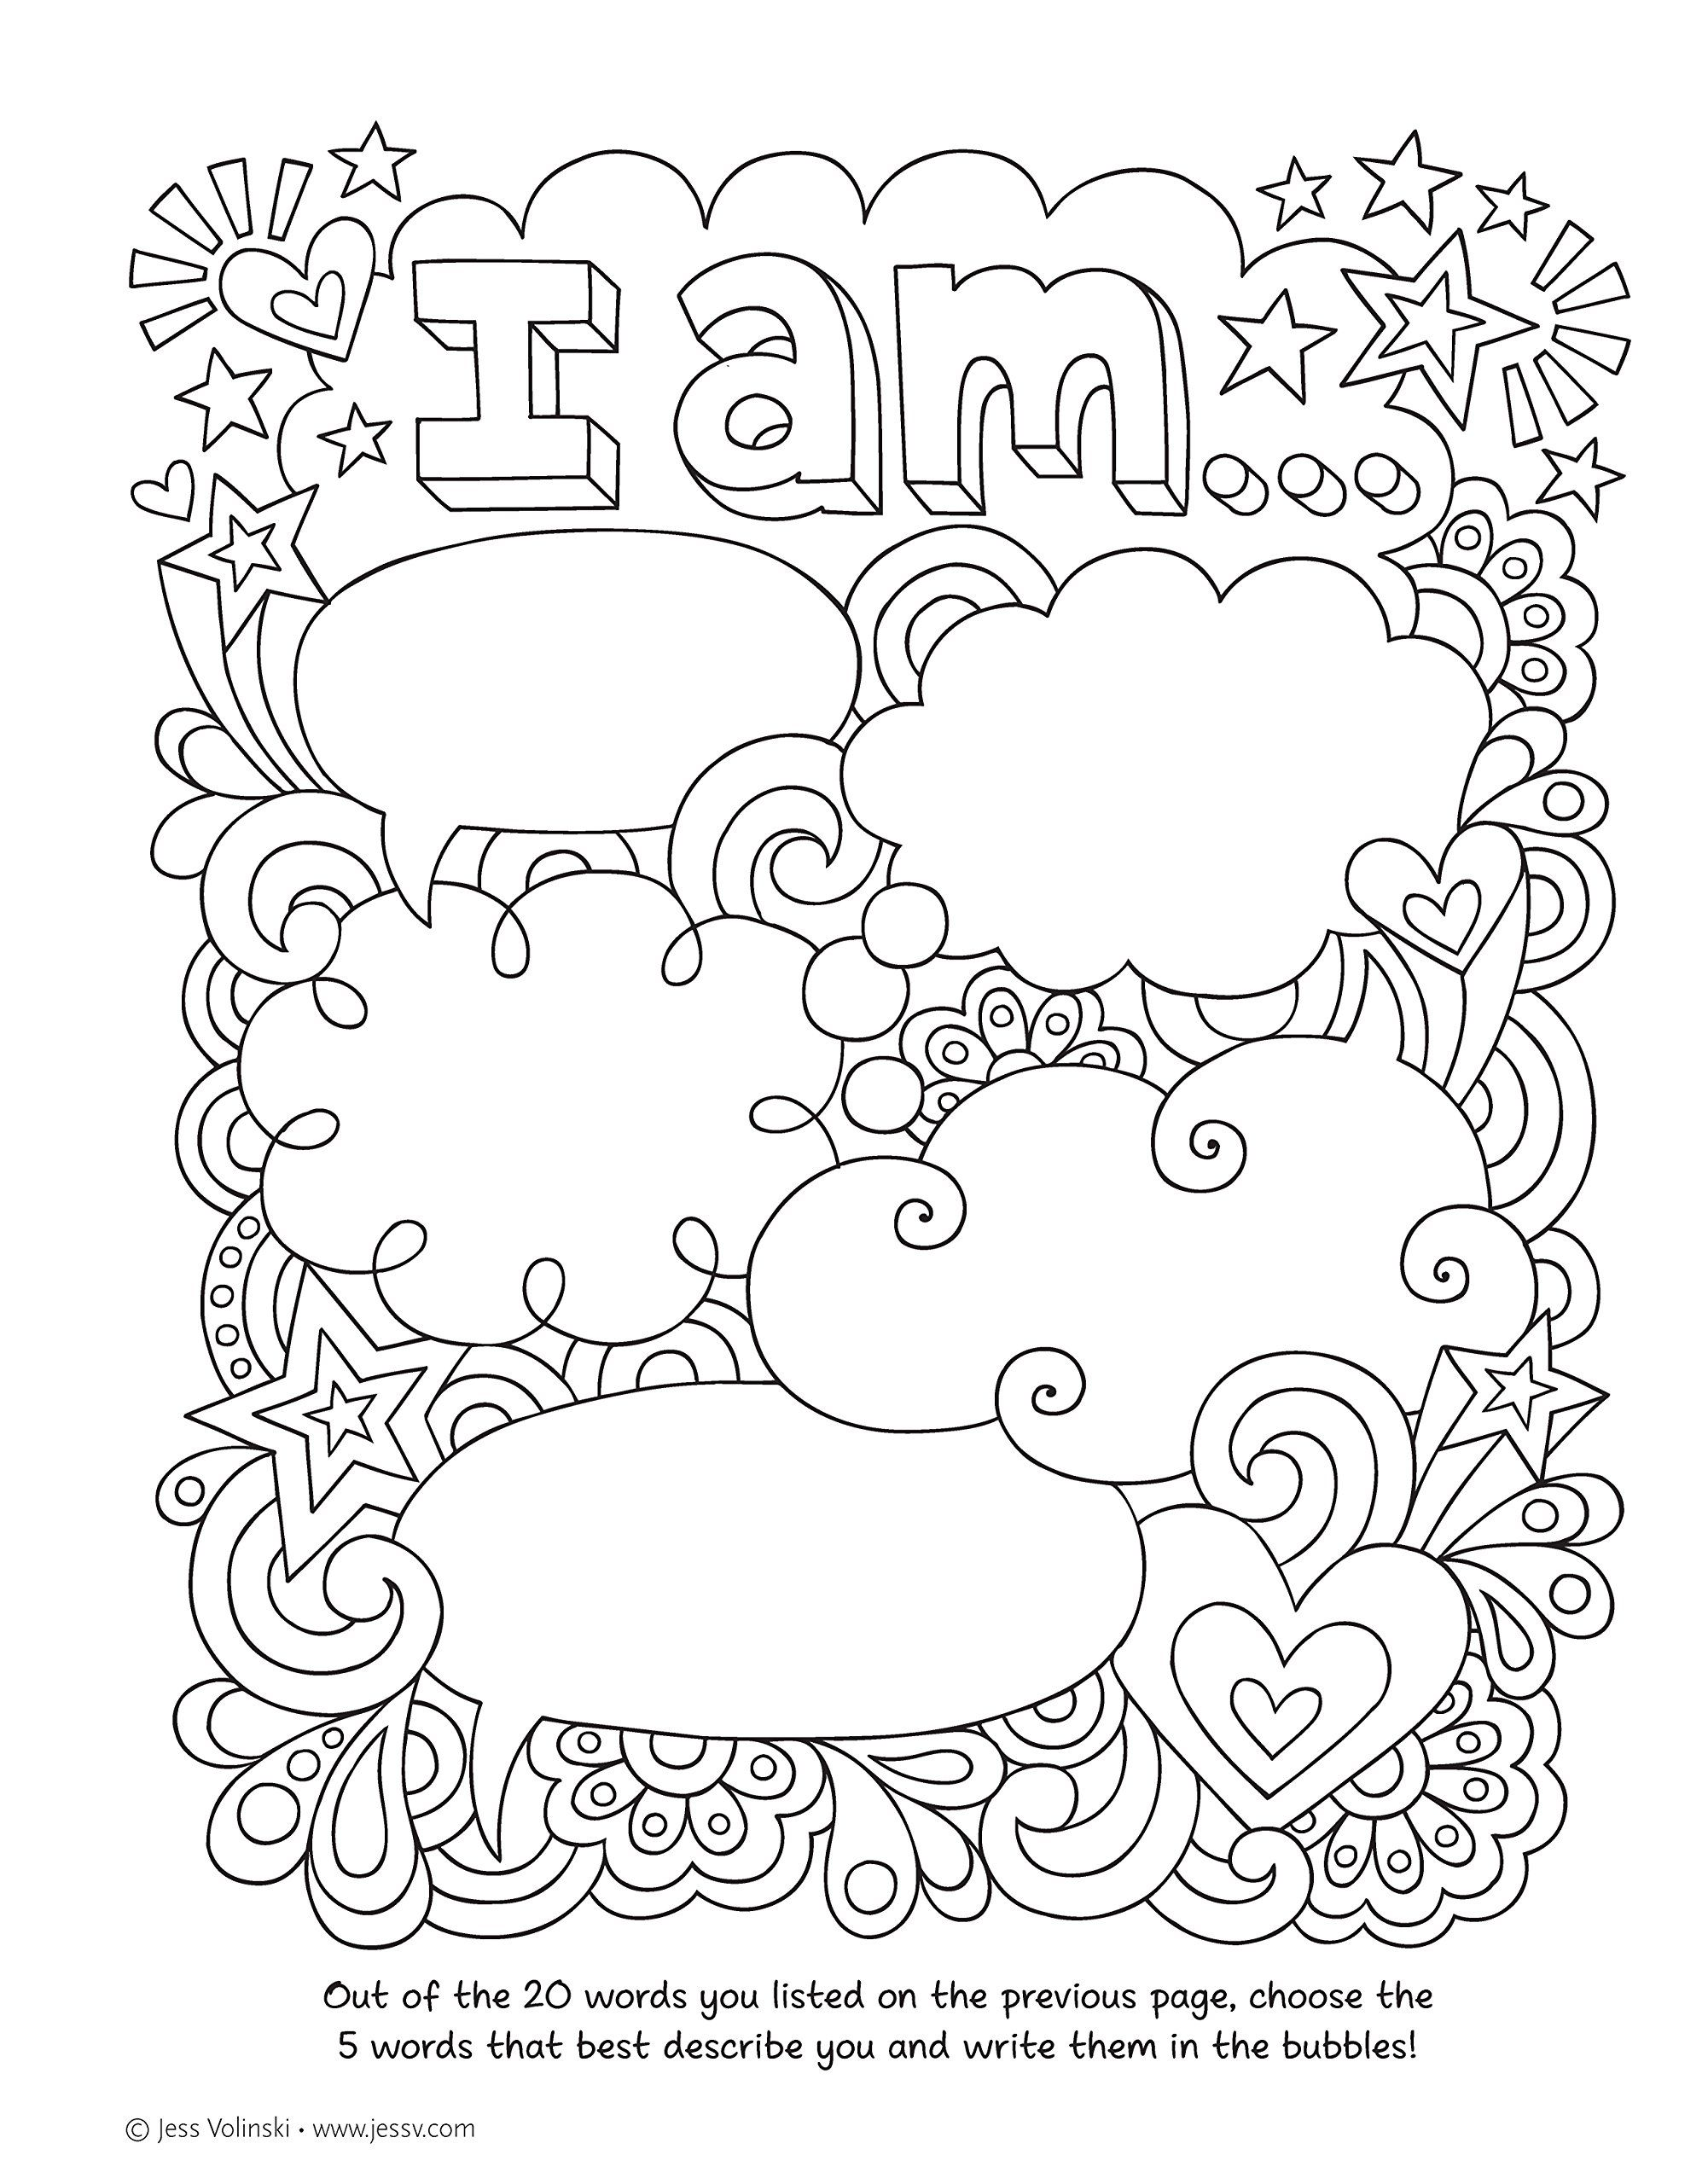 Notebook Doodles Go Girl Coloring With Images Notebook